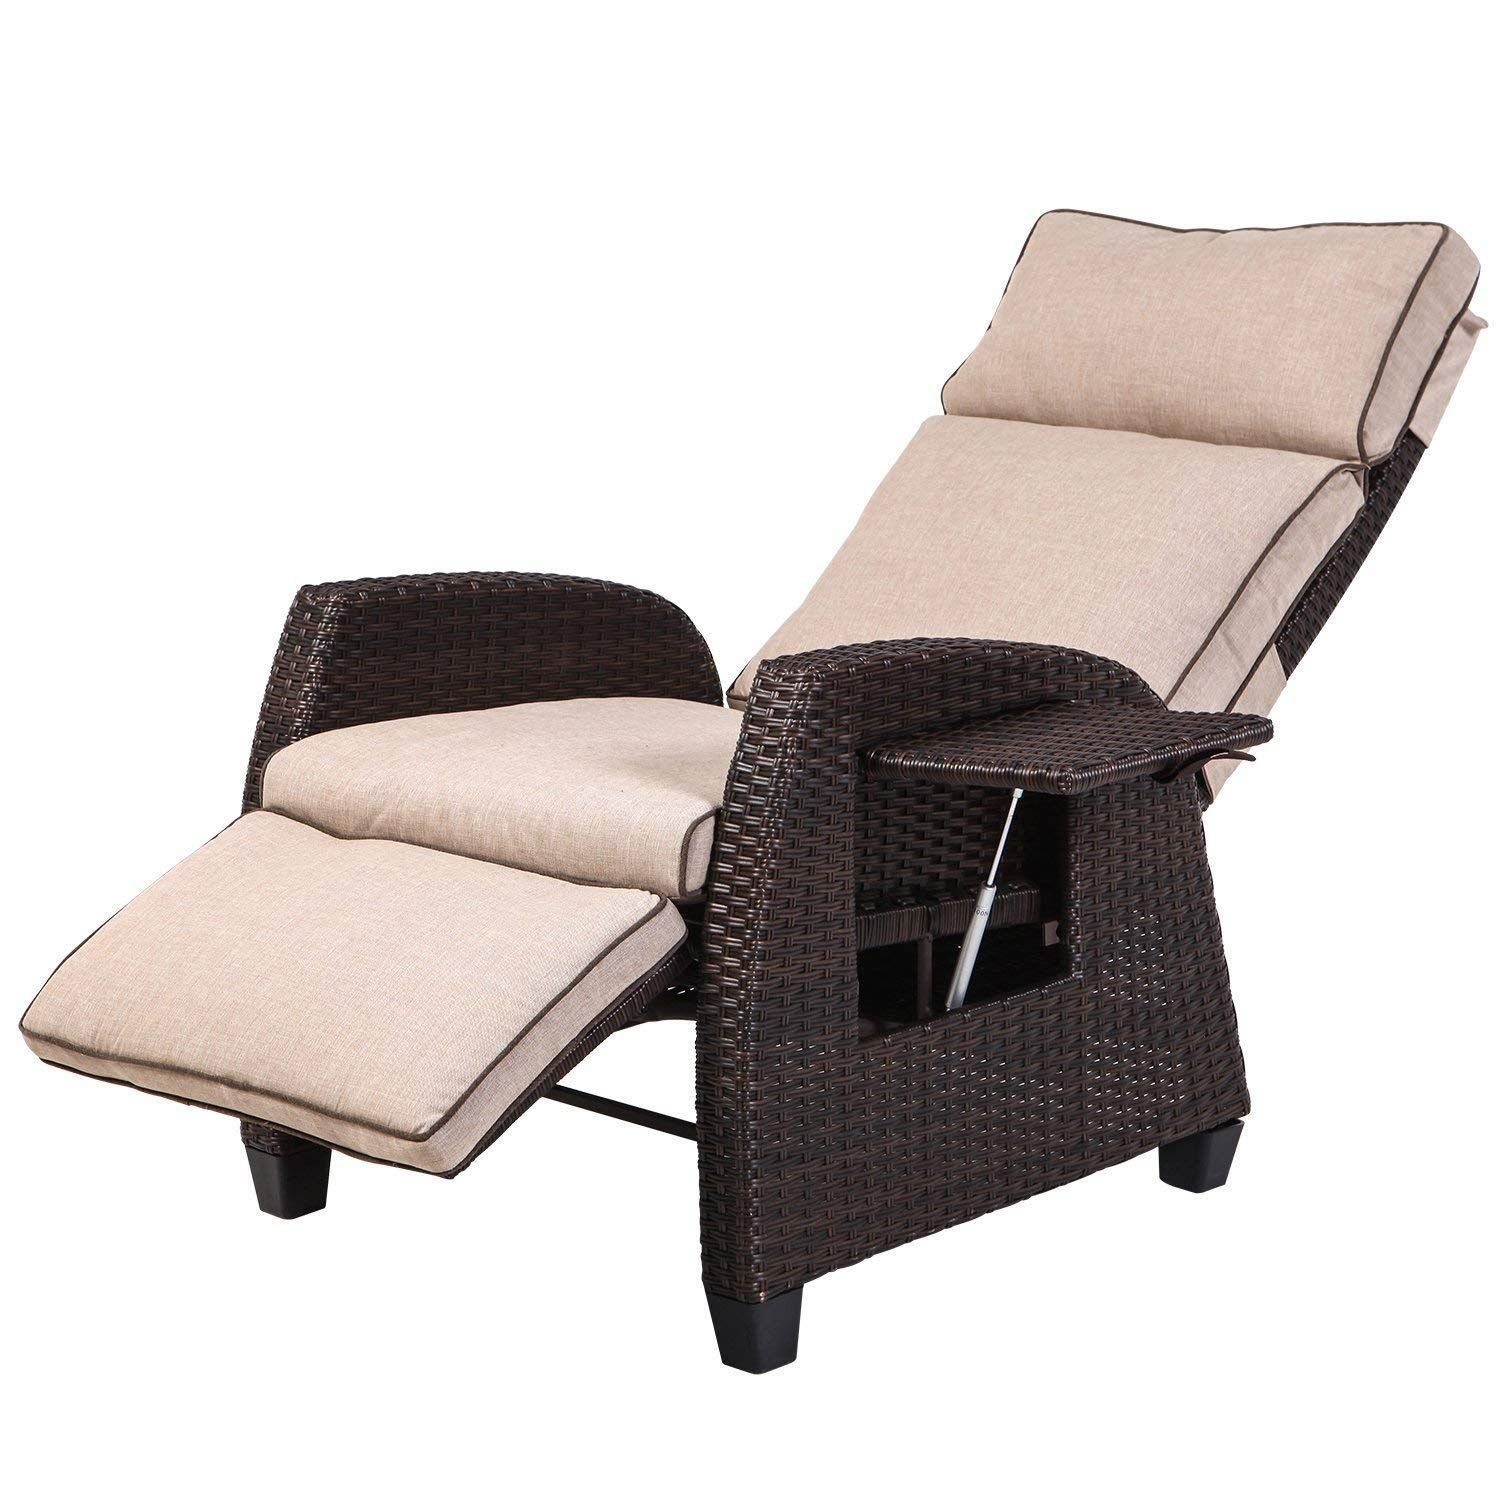 Lch Adjustable Recliner Relaxing Sofa Chair Outdoor Wicker Furniture Aluminum Frame Lounge With Beige Soft Thicken Cushions Porch Backyard Pool Or Garden In 2020 Lounge Chair Outdoor Outdoor Recliner Outdoor Wicker Furniture